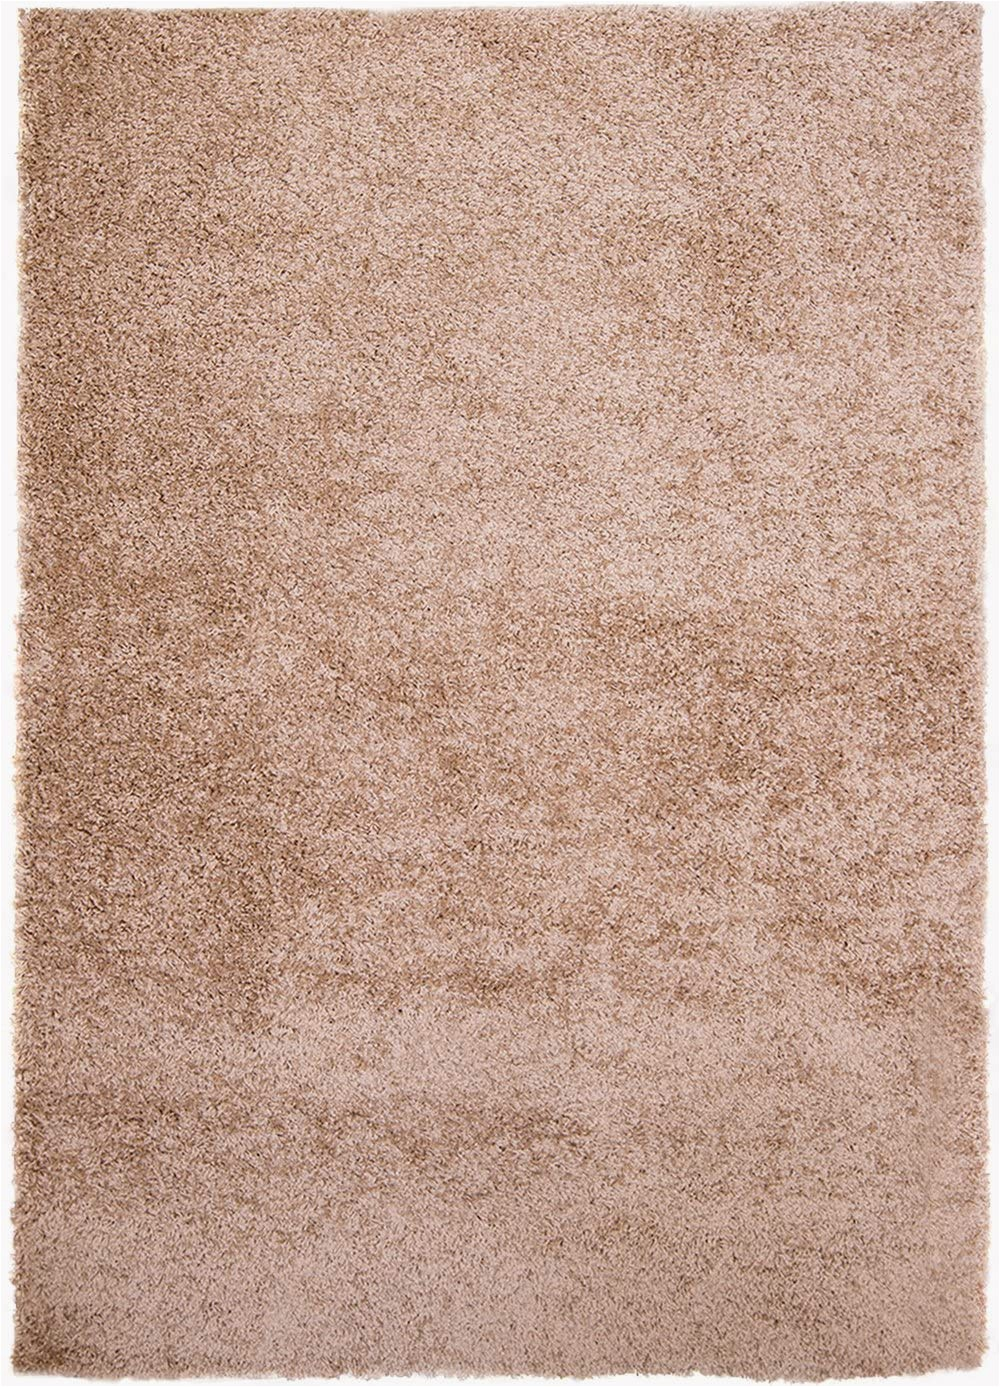 Home Dynamix Synergy area Rug Home Dynamix Synergy area Rugs 254 179 Taupe Beige